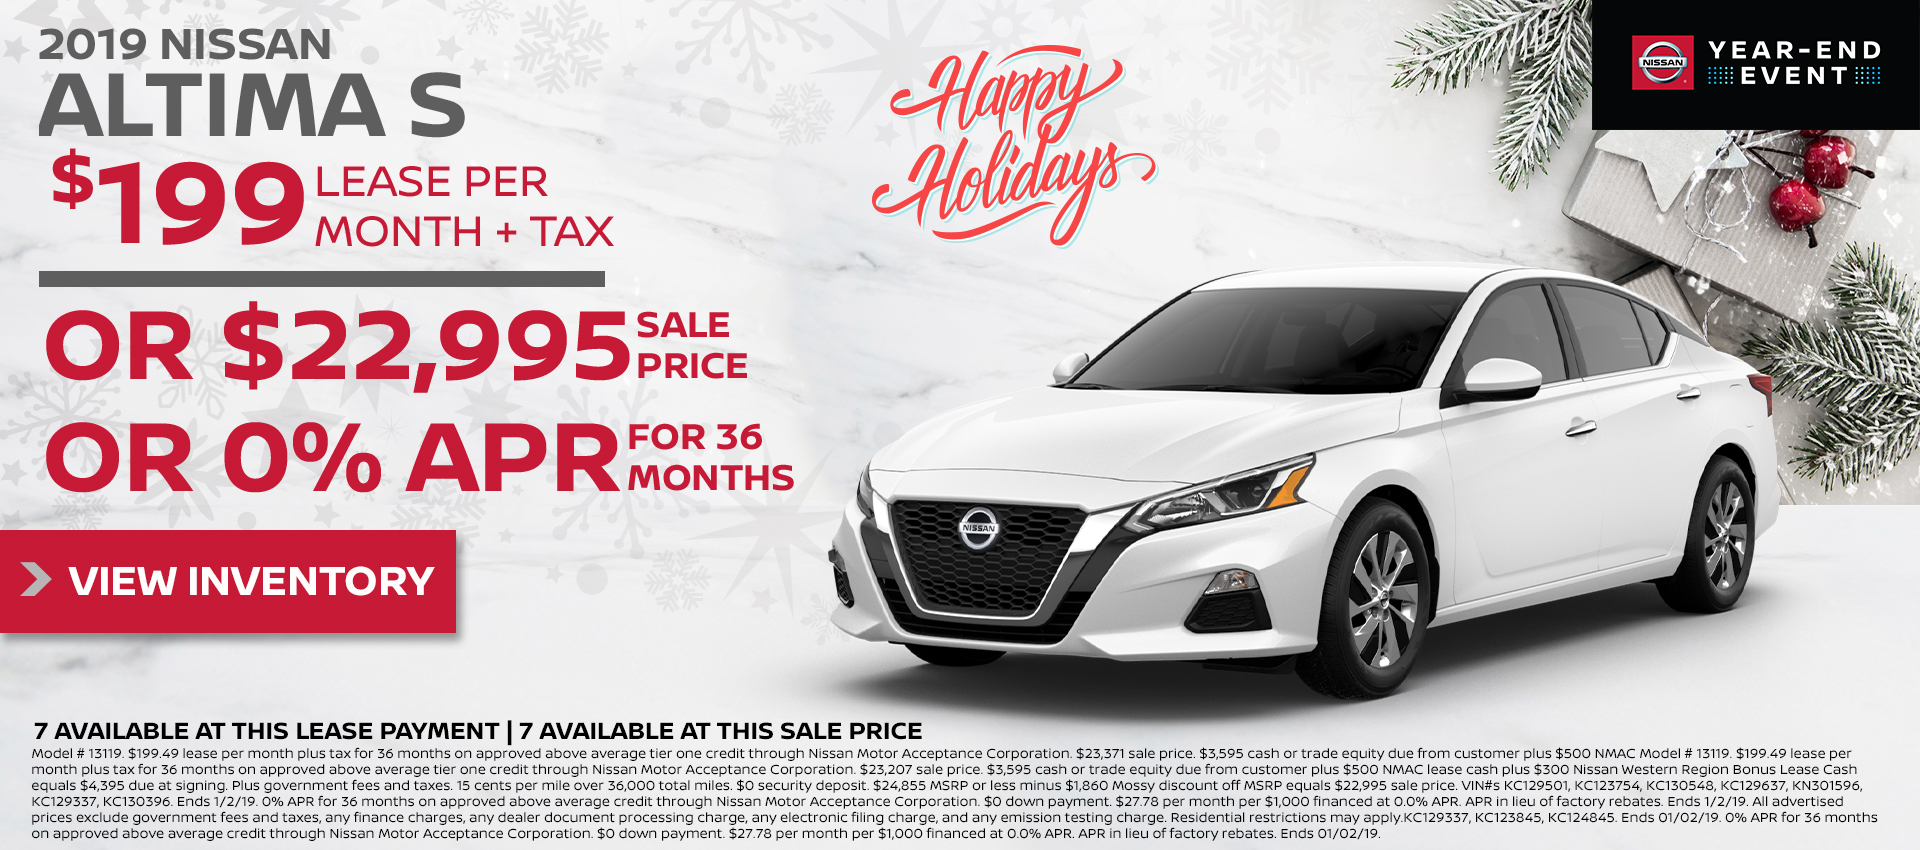 Mossy Nissan - Nissan Altima $199 Lease HP